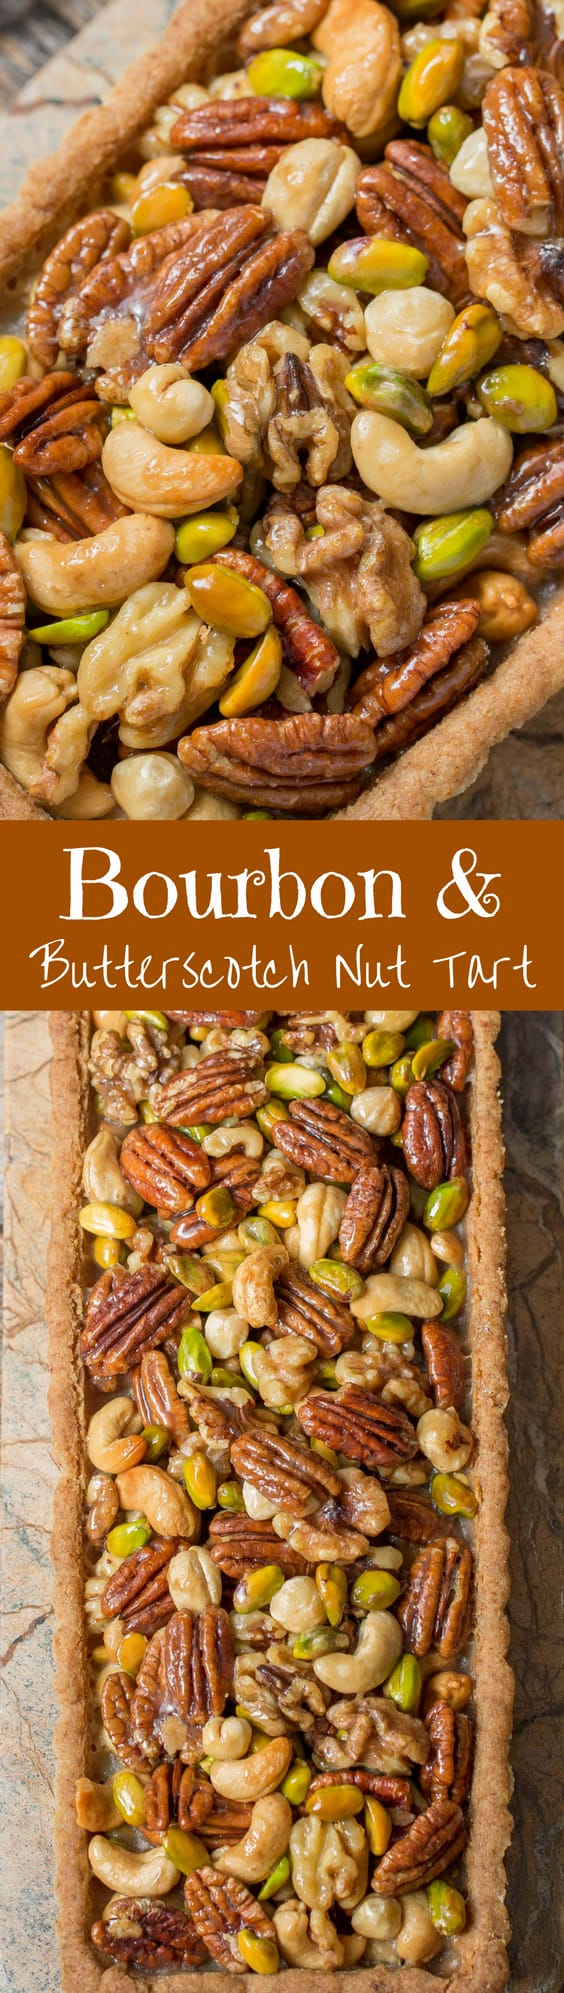 Bourbon & Butterscotch Nut Tart -Assorted nuts are coated in a smooth, creamy butterscotch sauce with just a hint of bourbon then baked in a pecan shortbread crust.   www.savingdessert.com